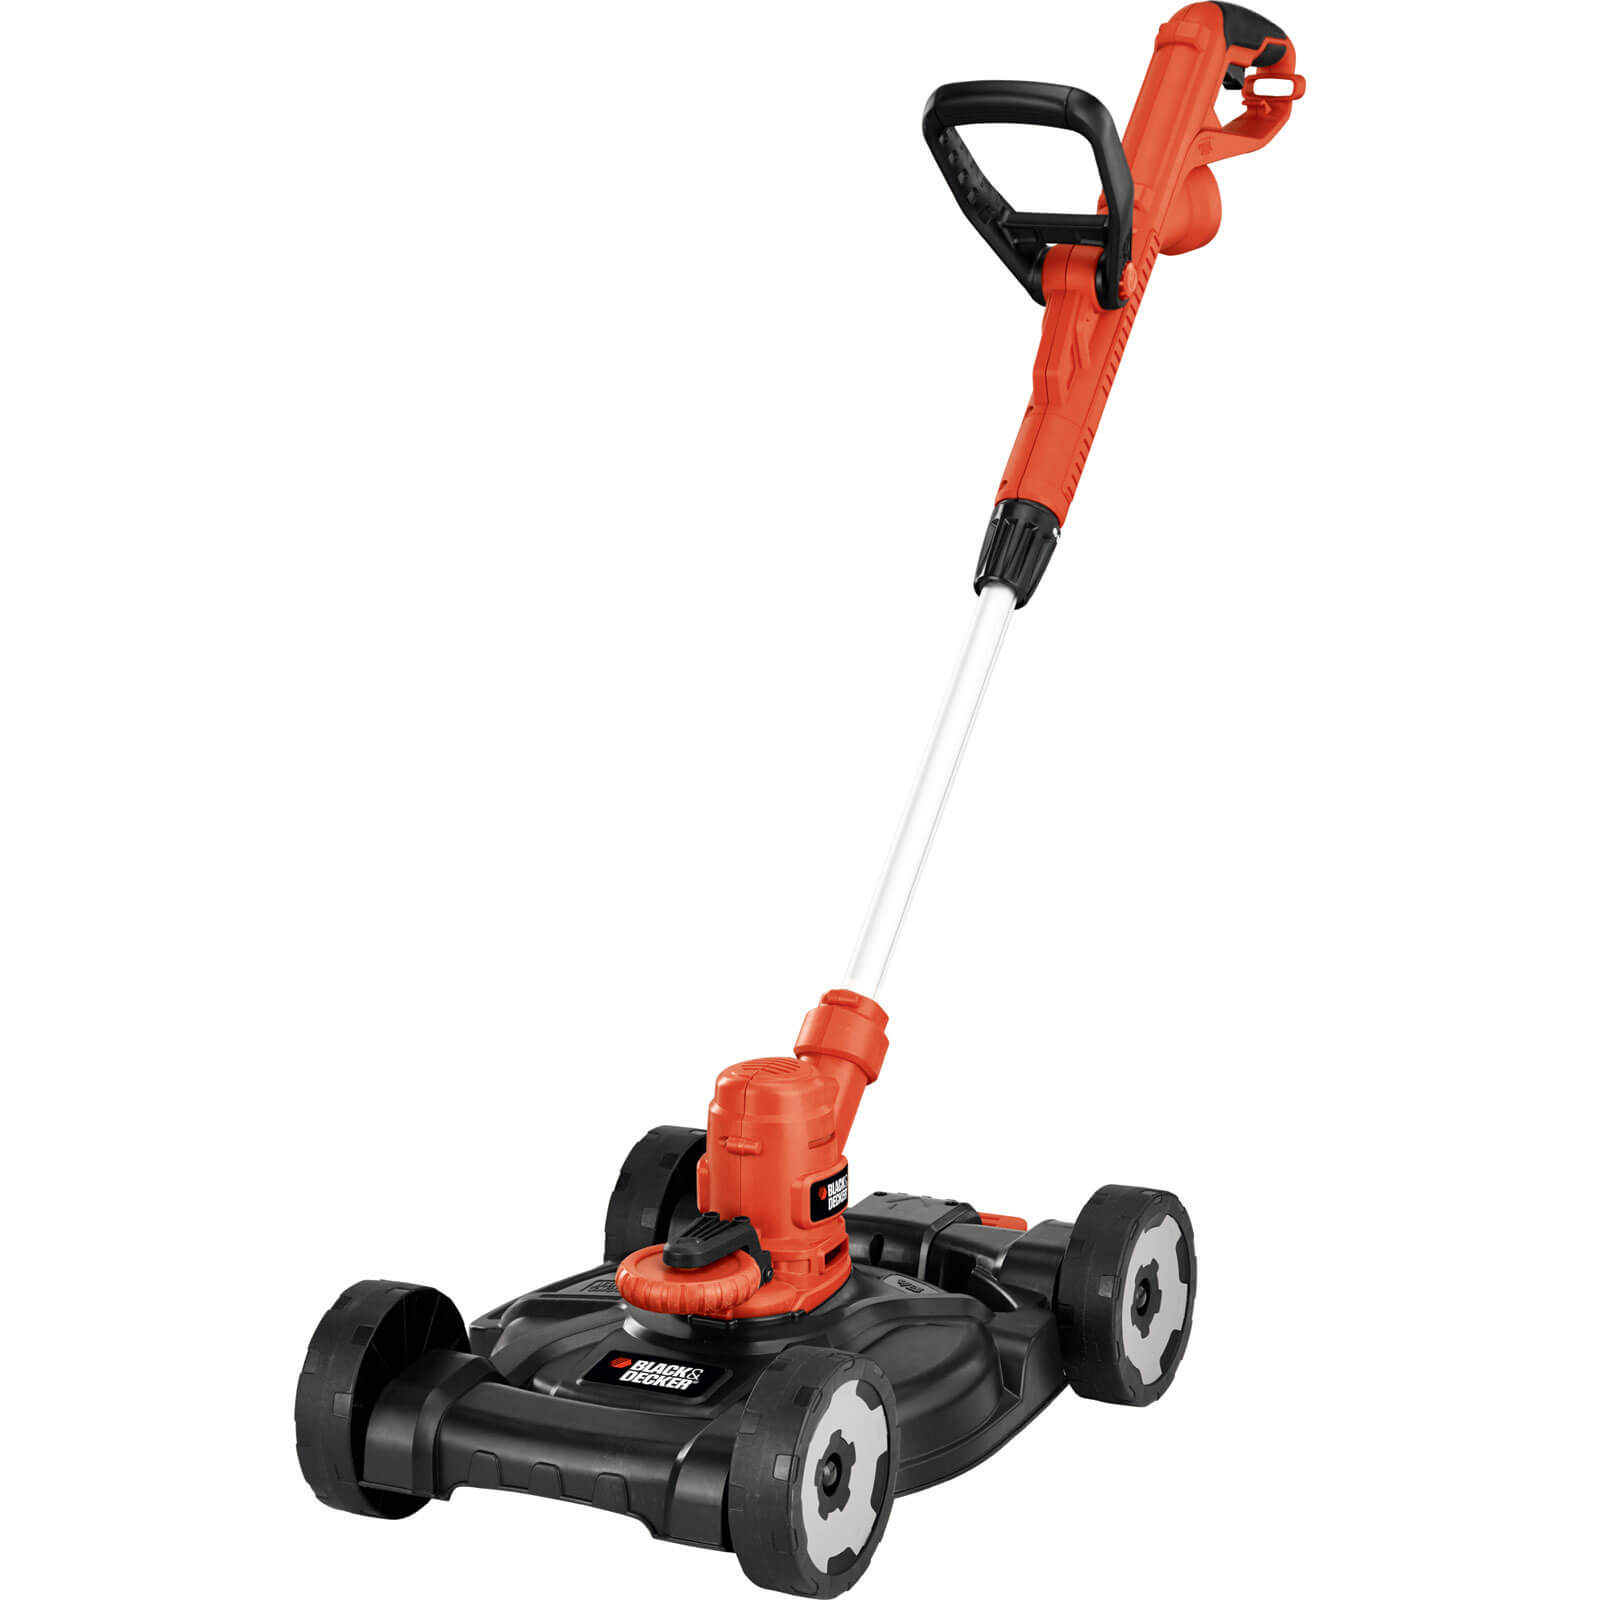 Black & Decker ST5530CM 3 in 1 Edger, Grass Trimmer & Lawn Mower 300mm Cut Width 550w 240v free Spare Spool & Line Worth £5.95